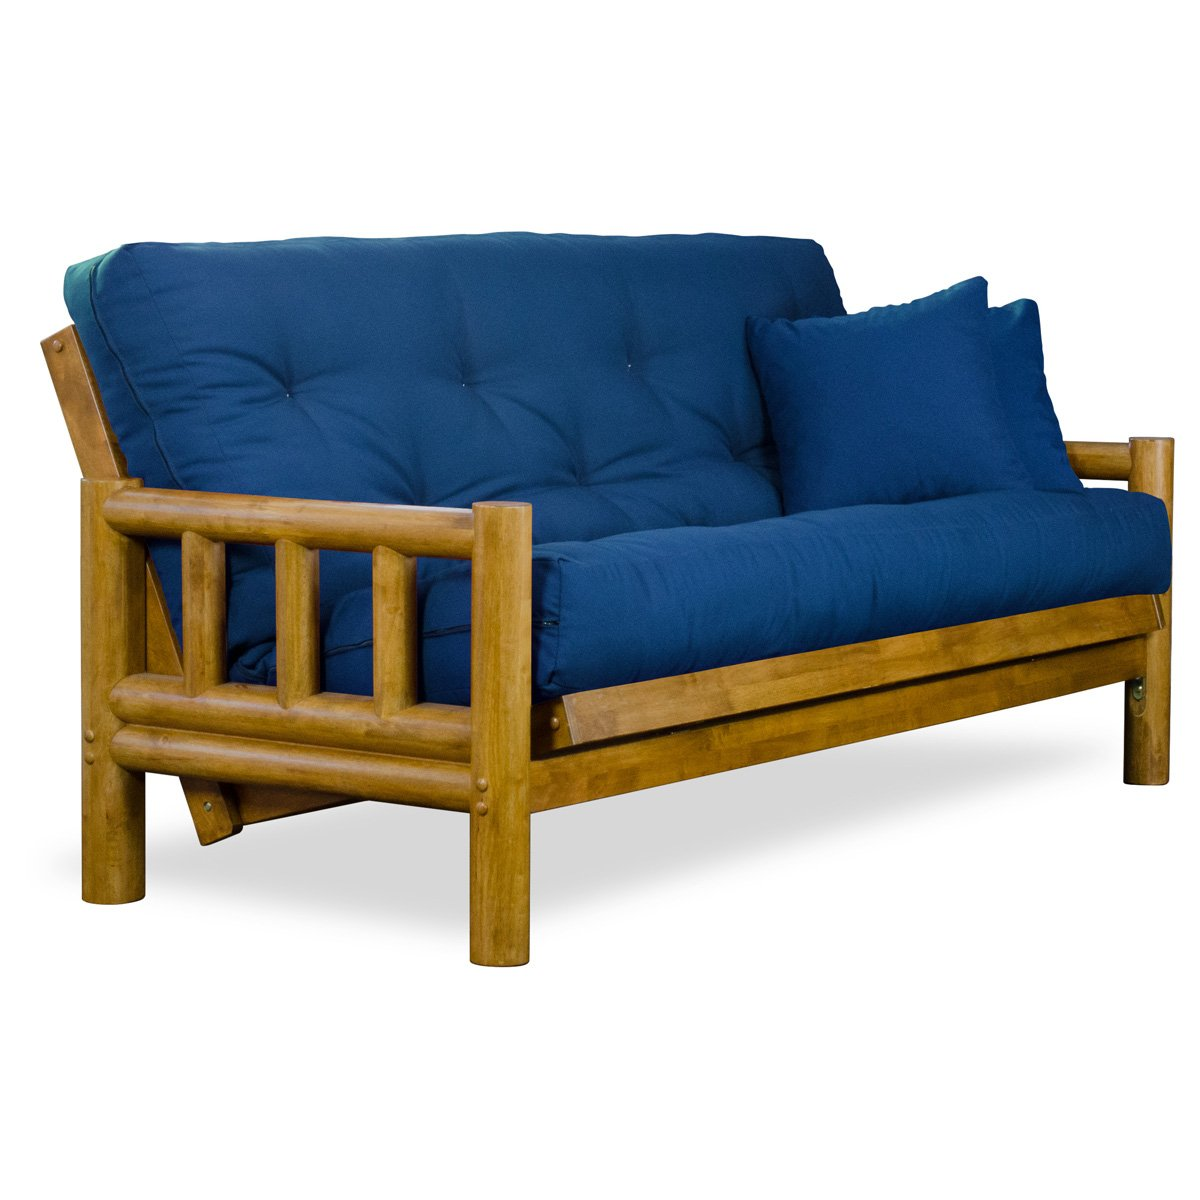 Rustic Tahoe Log Queen Size Wood Futon Frame - Heritage Finish